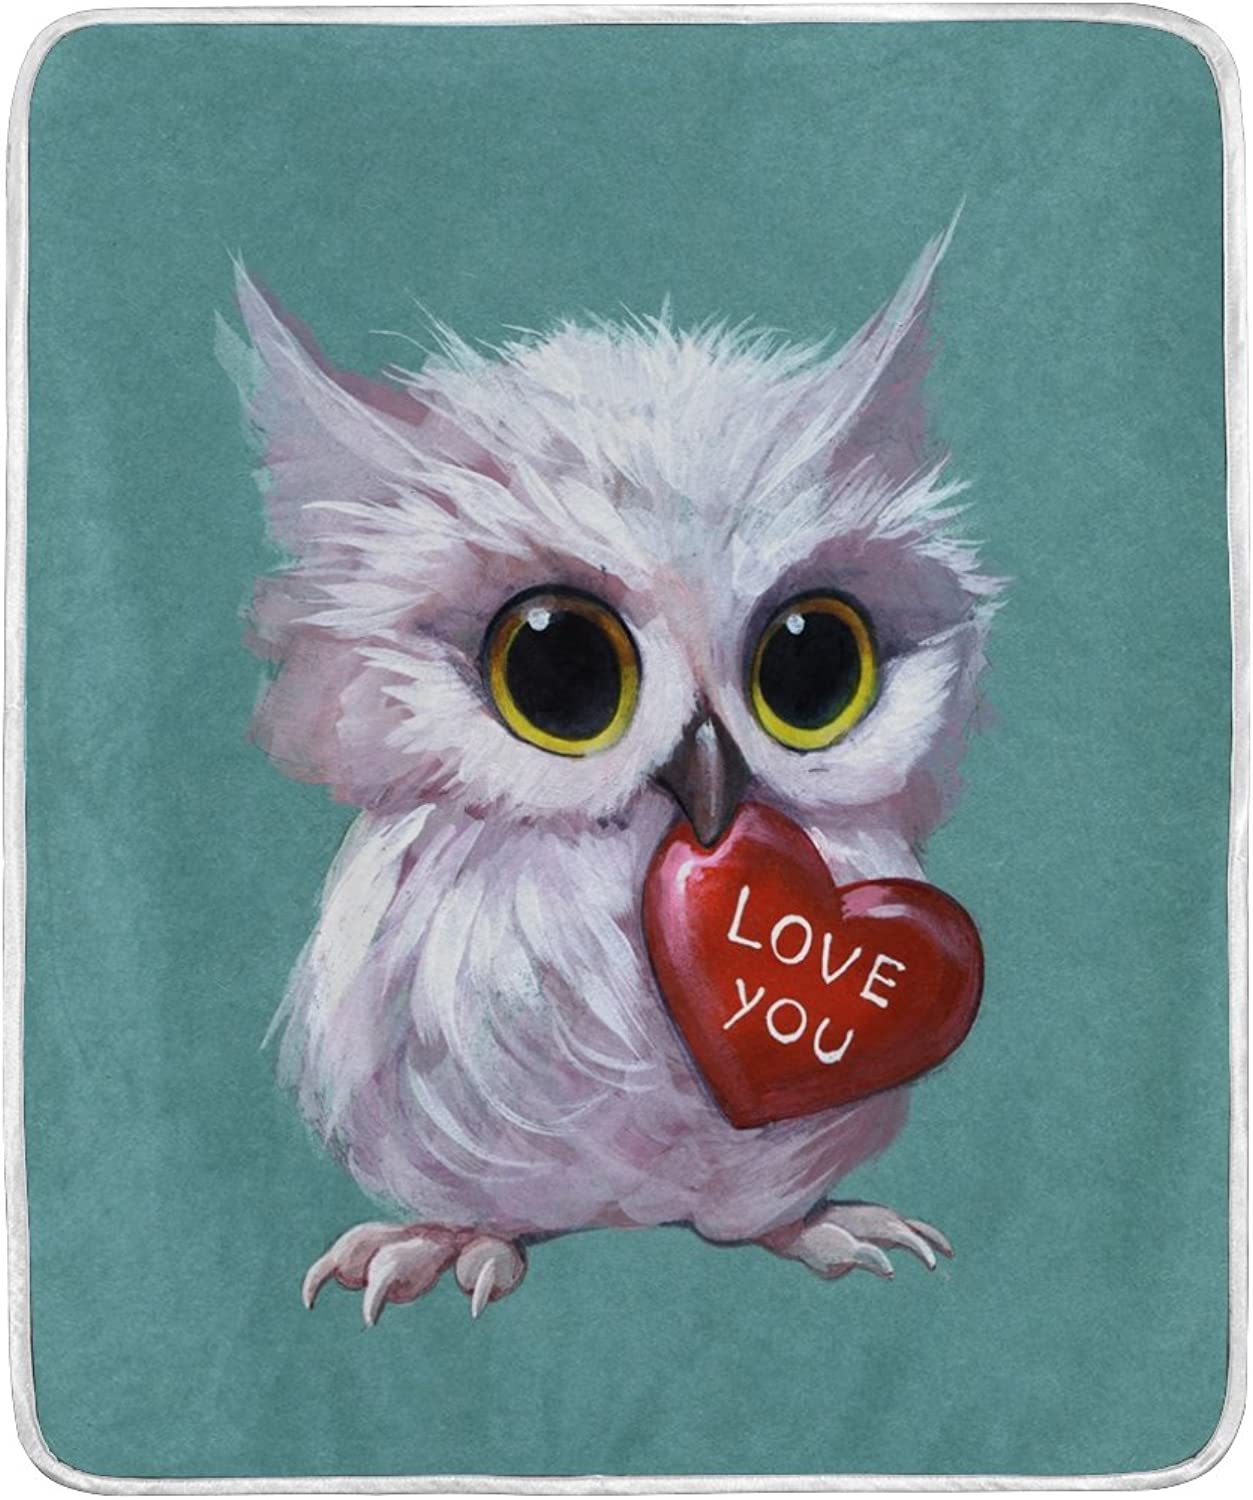 ALIREA 3D Owl Holding A Heart Super Soft Warm Blanket Lightweight Throw Blankets for Bed Couch Sofa Travelling Camping 60 x 50 Inch for Kids Boys Girls